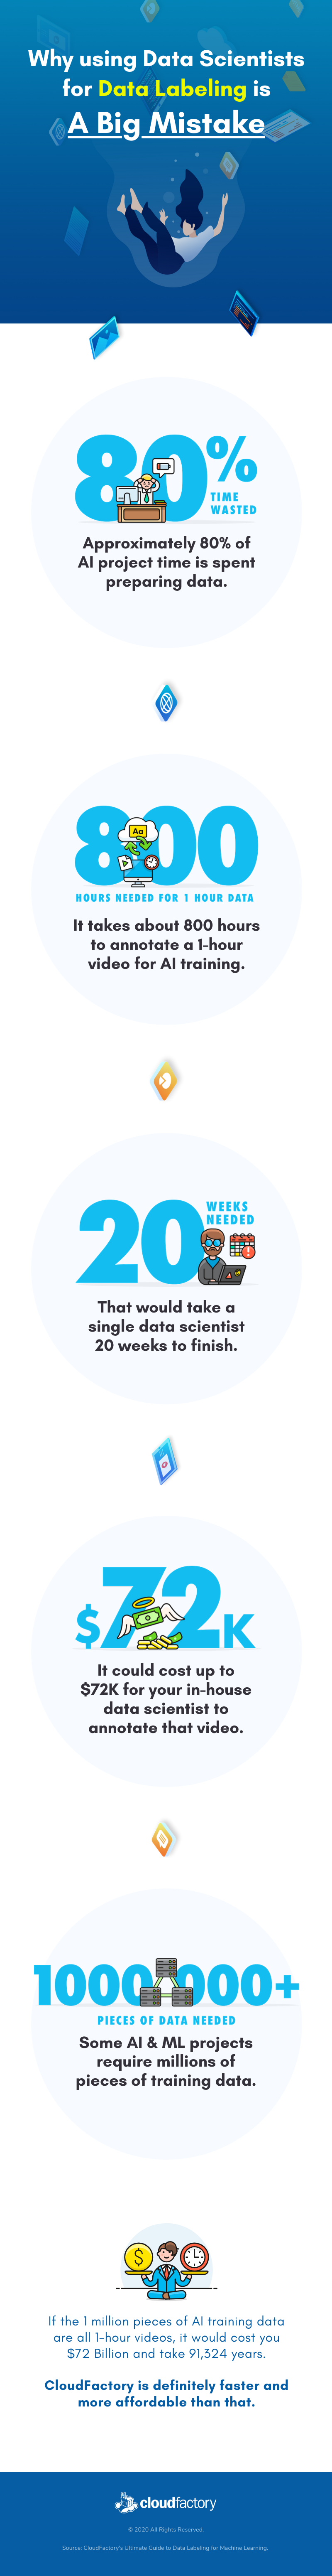 Why Using Data Scientists for Data Labeling is a Big Mistake